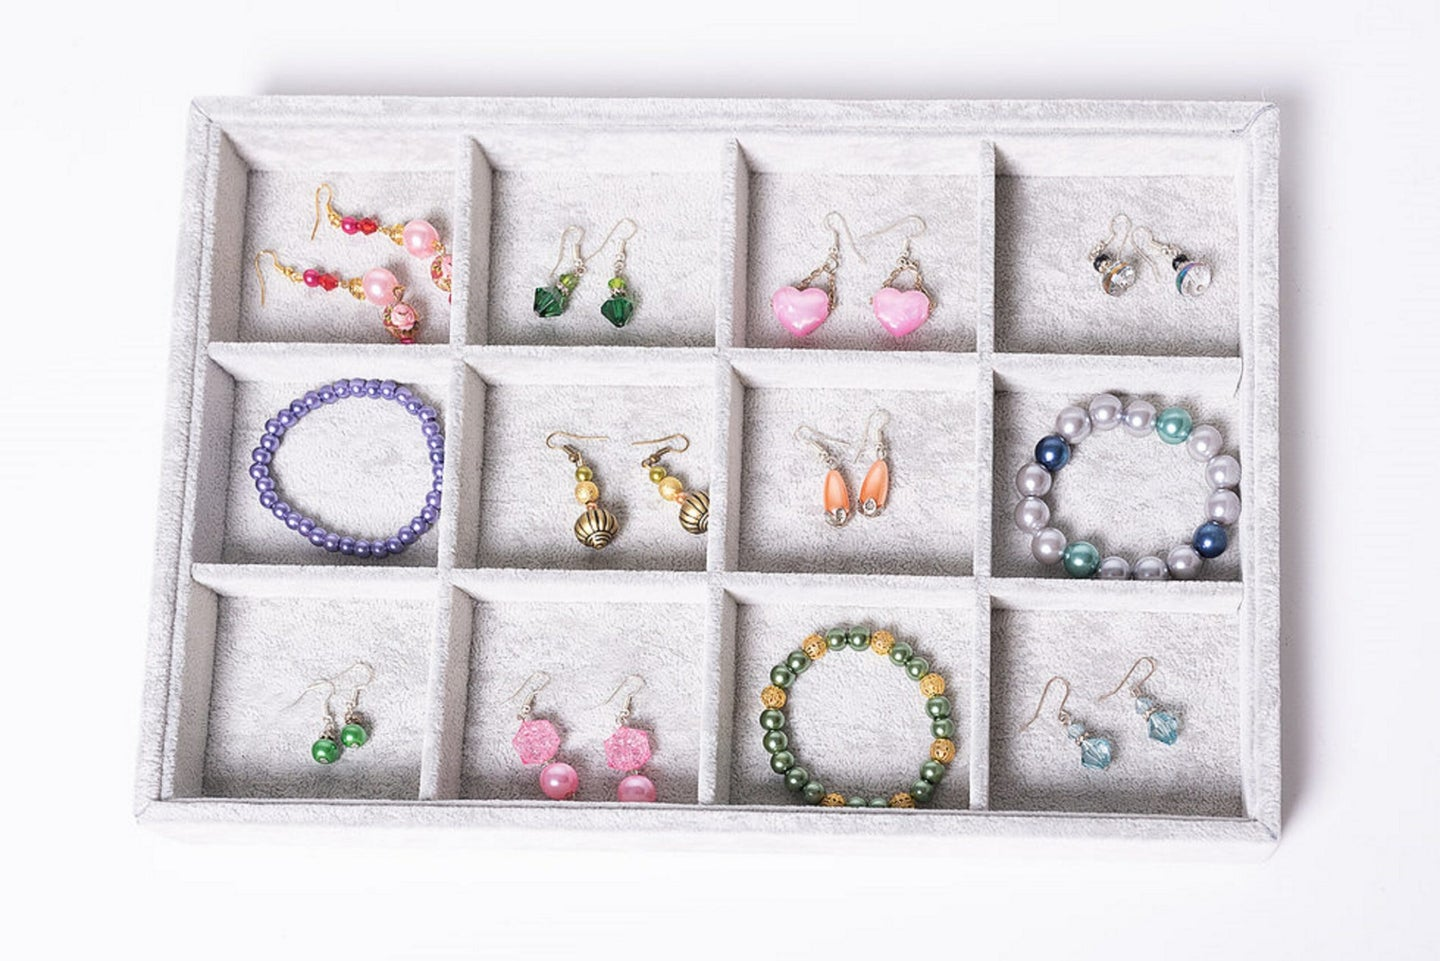 Jewelry storage options to keep your treasures safe and organized